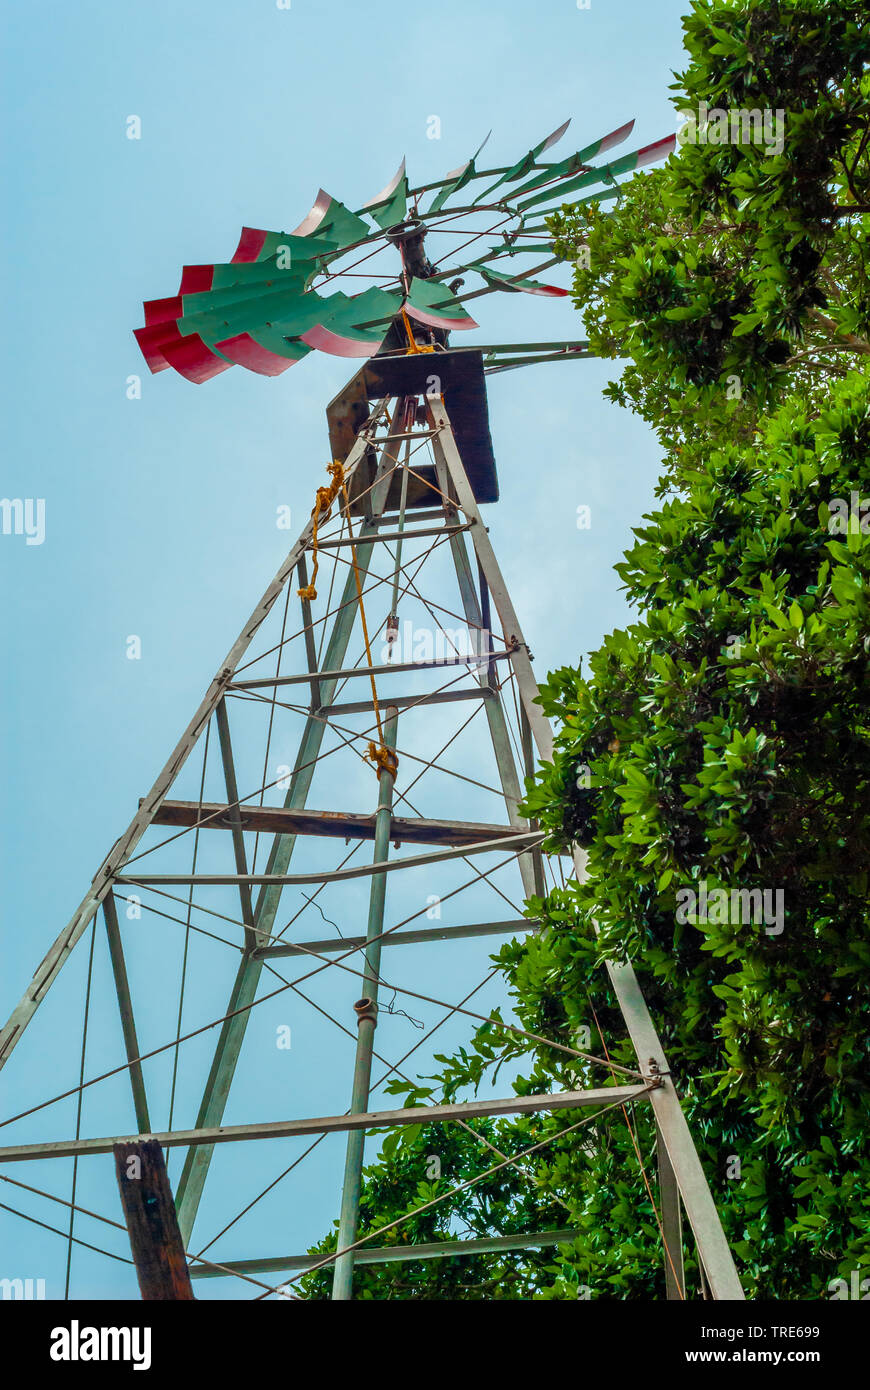 Windmill, with green blades, used for water extraction, taken from Tecoh, in the Yucatan peninsula - Stock Image